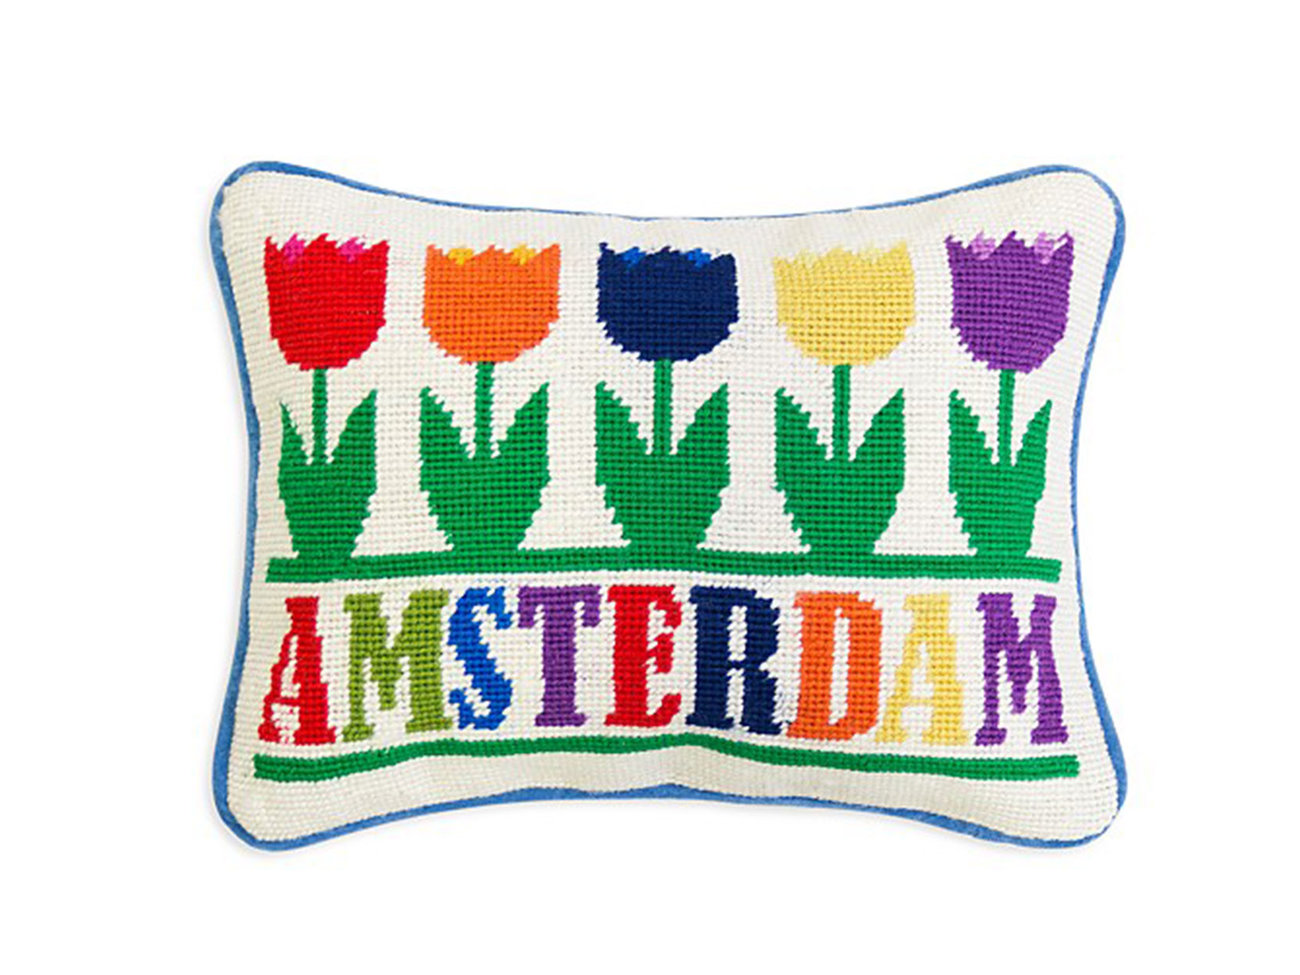 amsterdam-pillow-home-gg1115.jpg